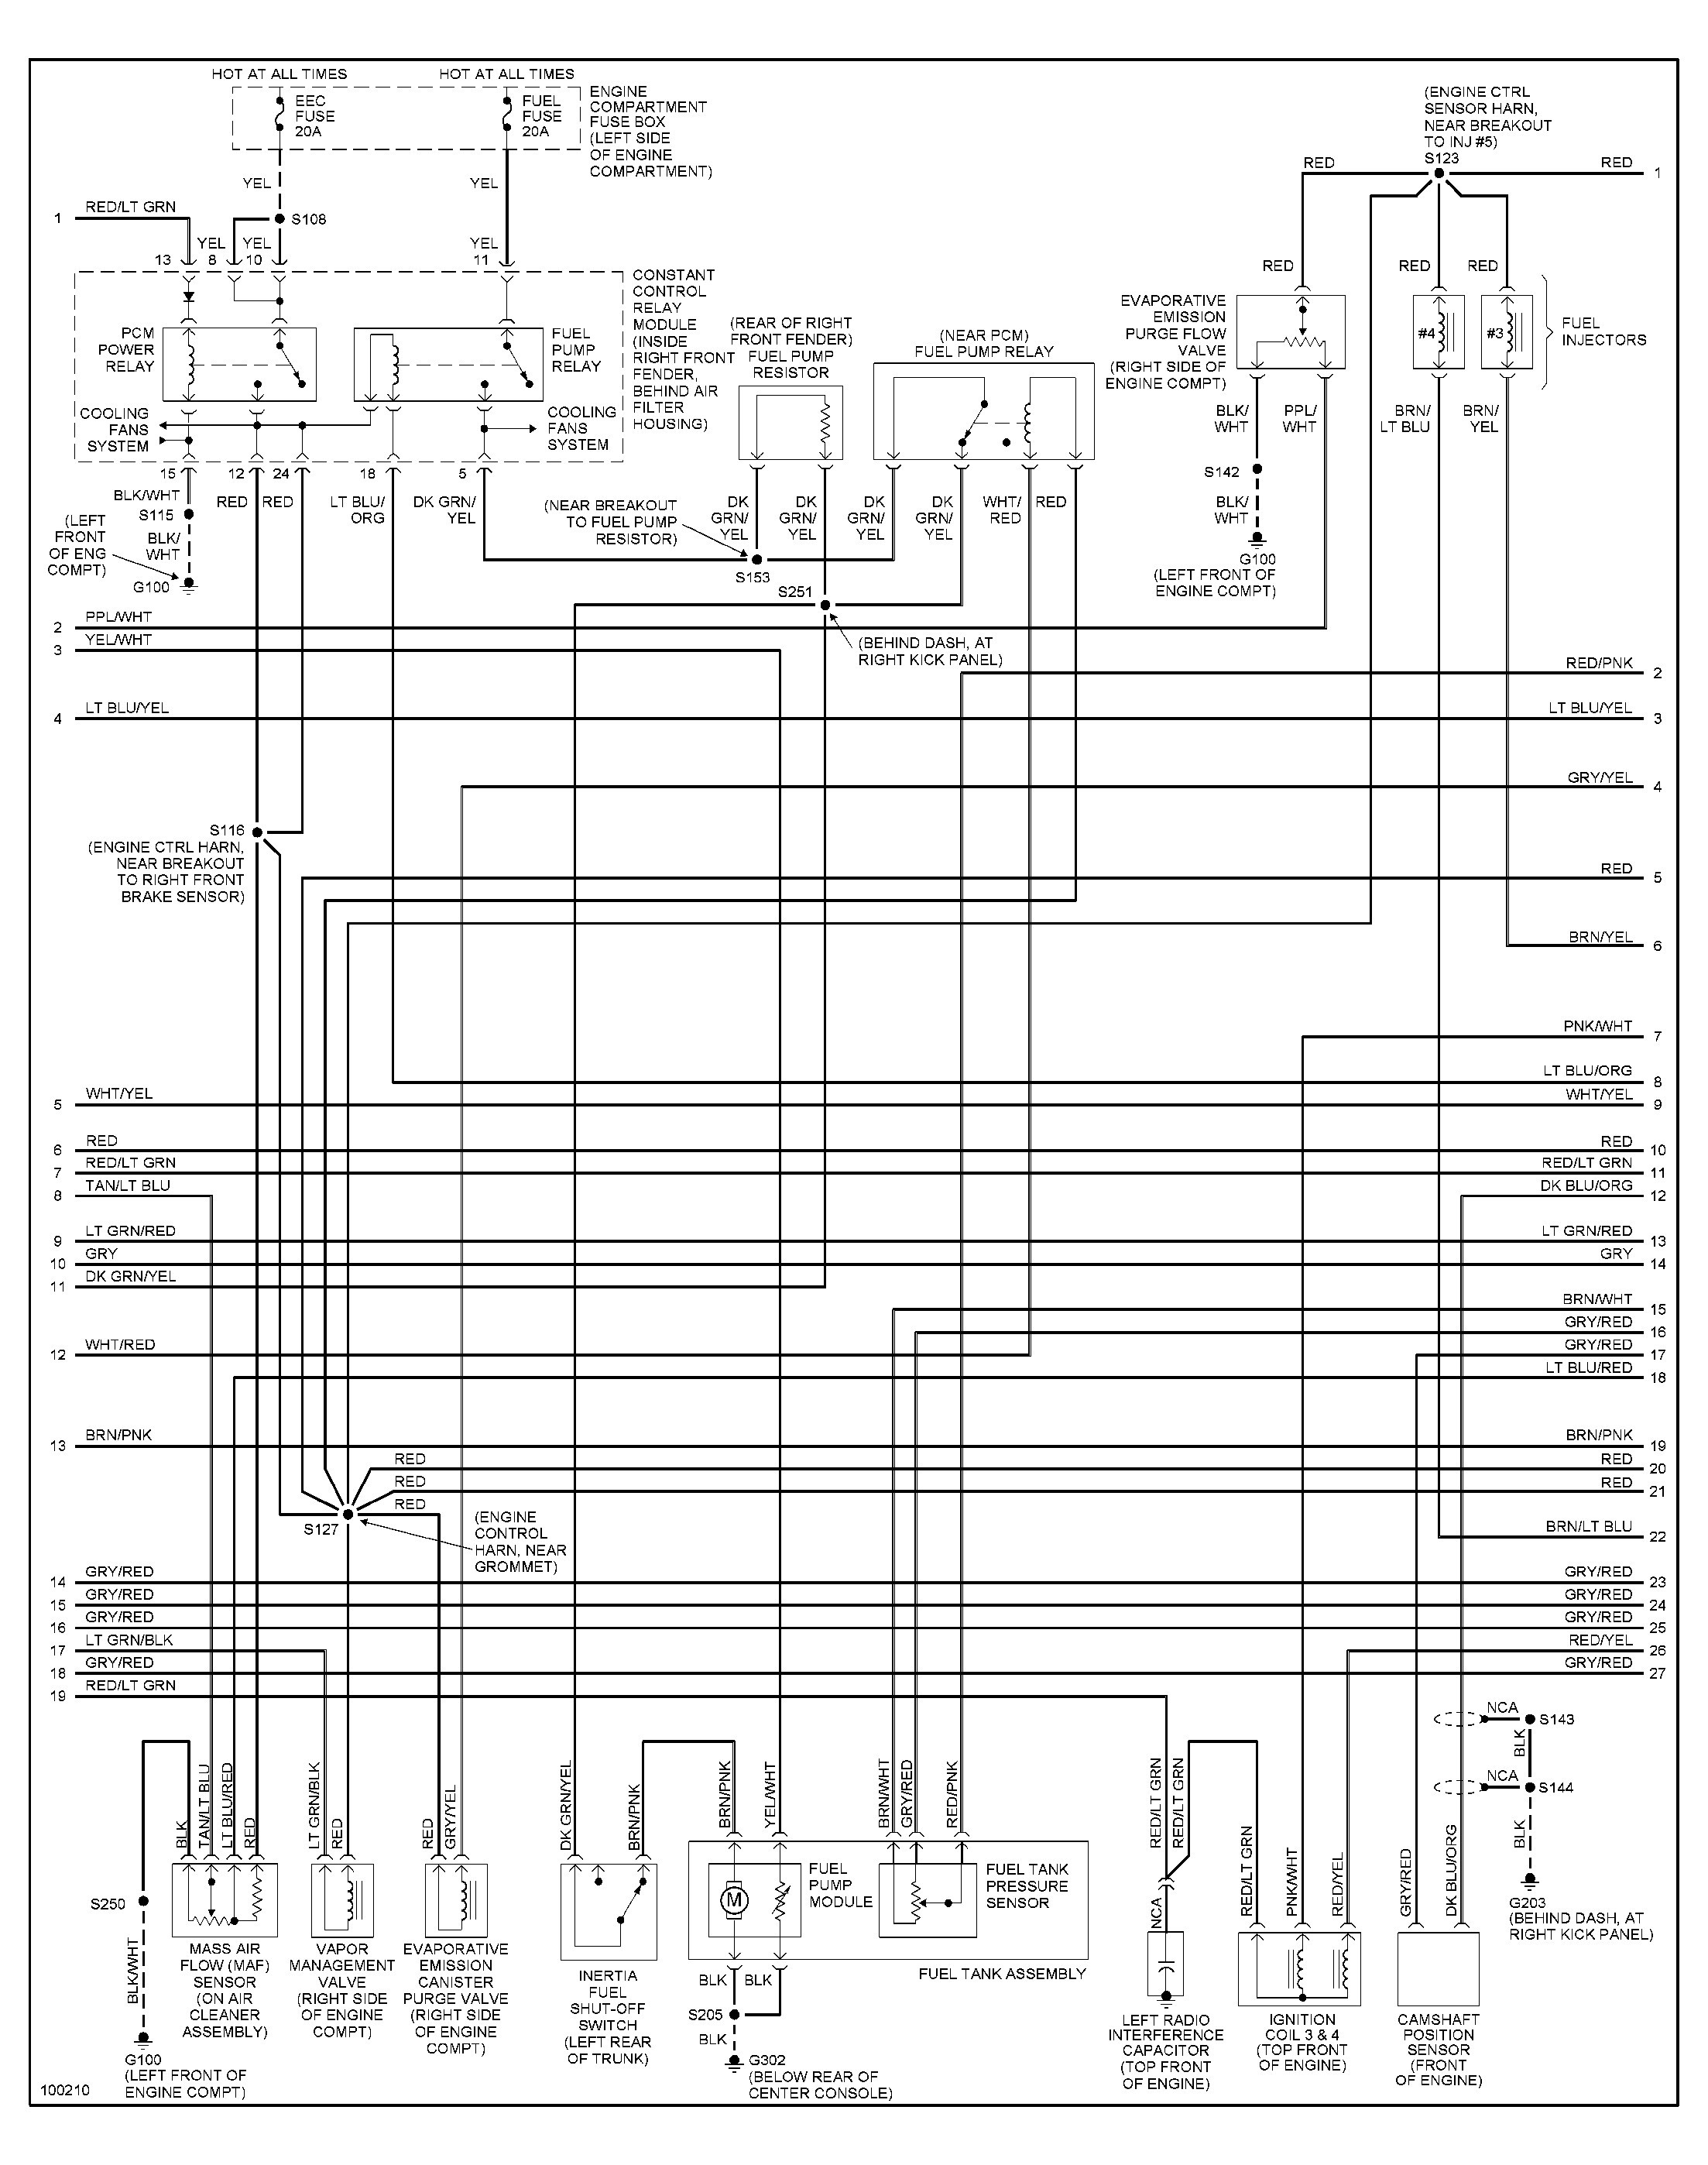 1998 ford Mustang Engine Diagram ford Fusion Engine Diagram ford Mustang Gt 98 Fuel Pump Not Working Of 1998 ford Mustang Engine Diagram